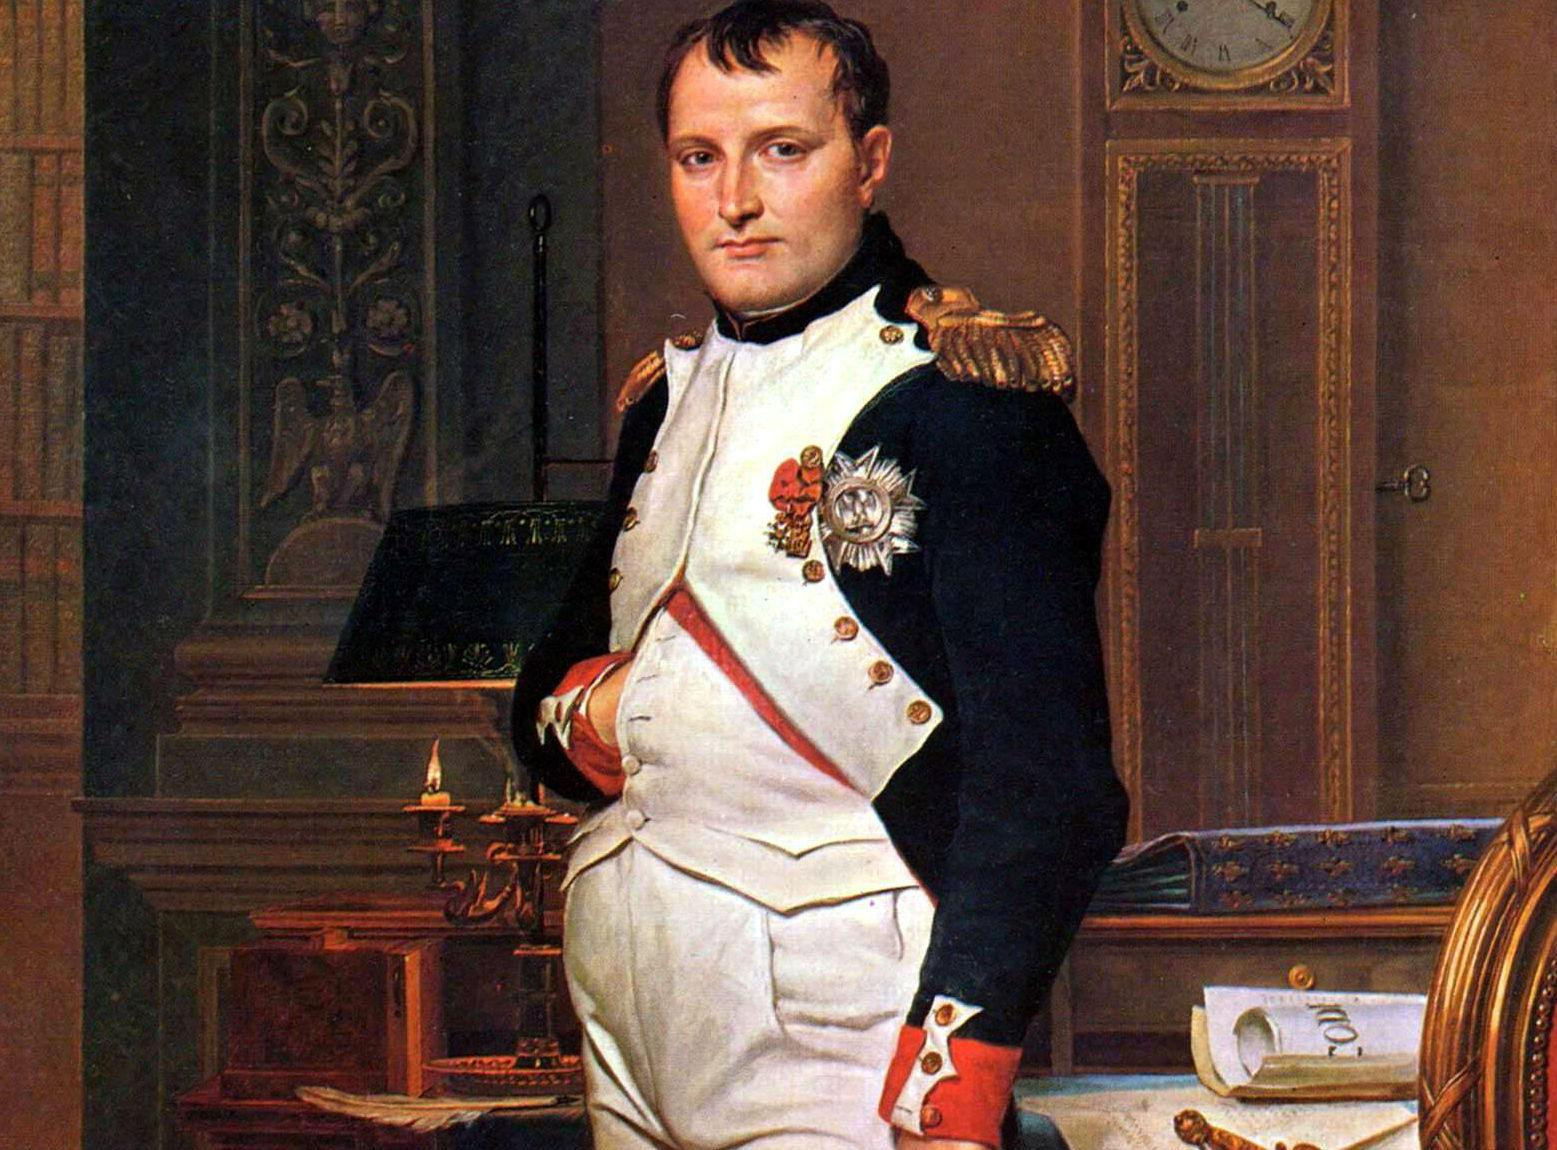 the napoleon 11102018  explore the life of napoleon, the legendary revolutionary general who rose to build an empire before defeat at waterloo.